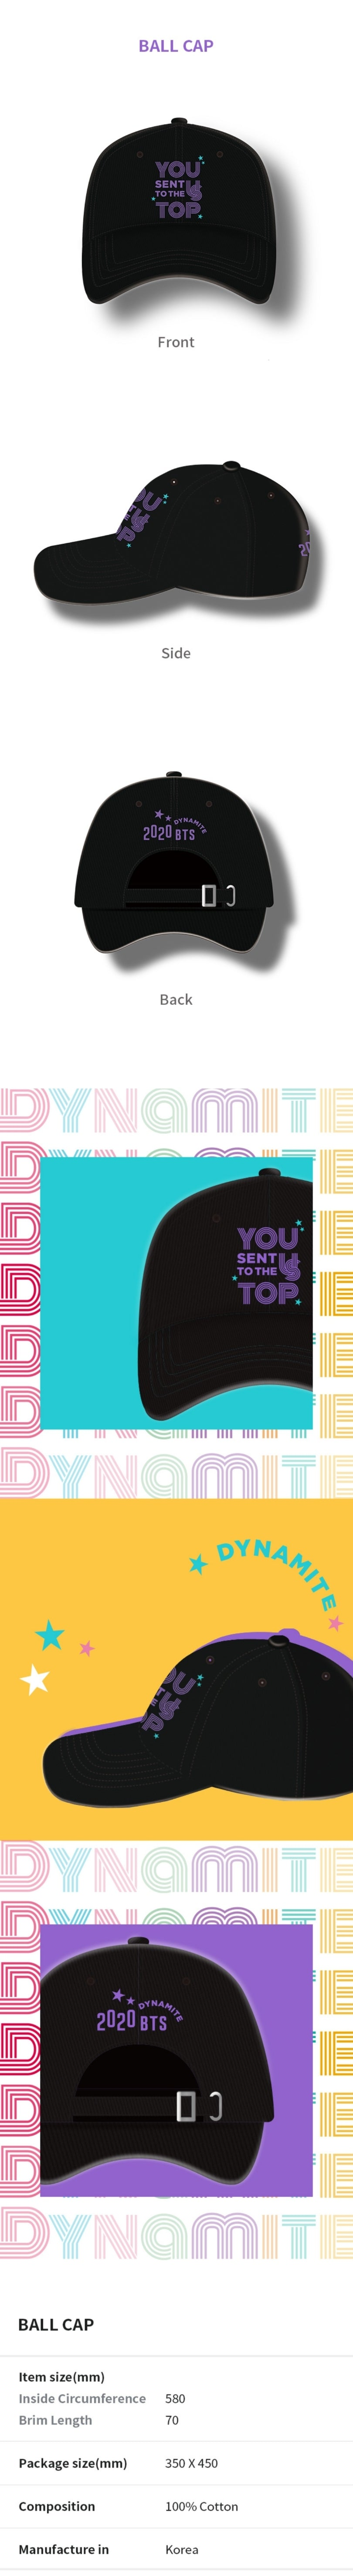 BTS Dynamite Celebration Oficial Merchandise - Ball Cap 02